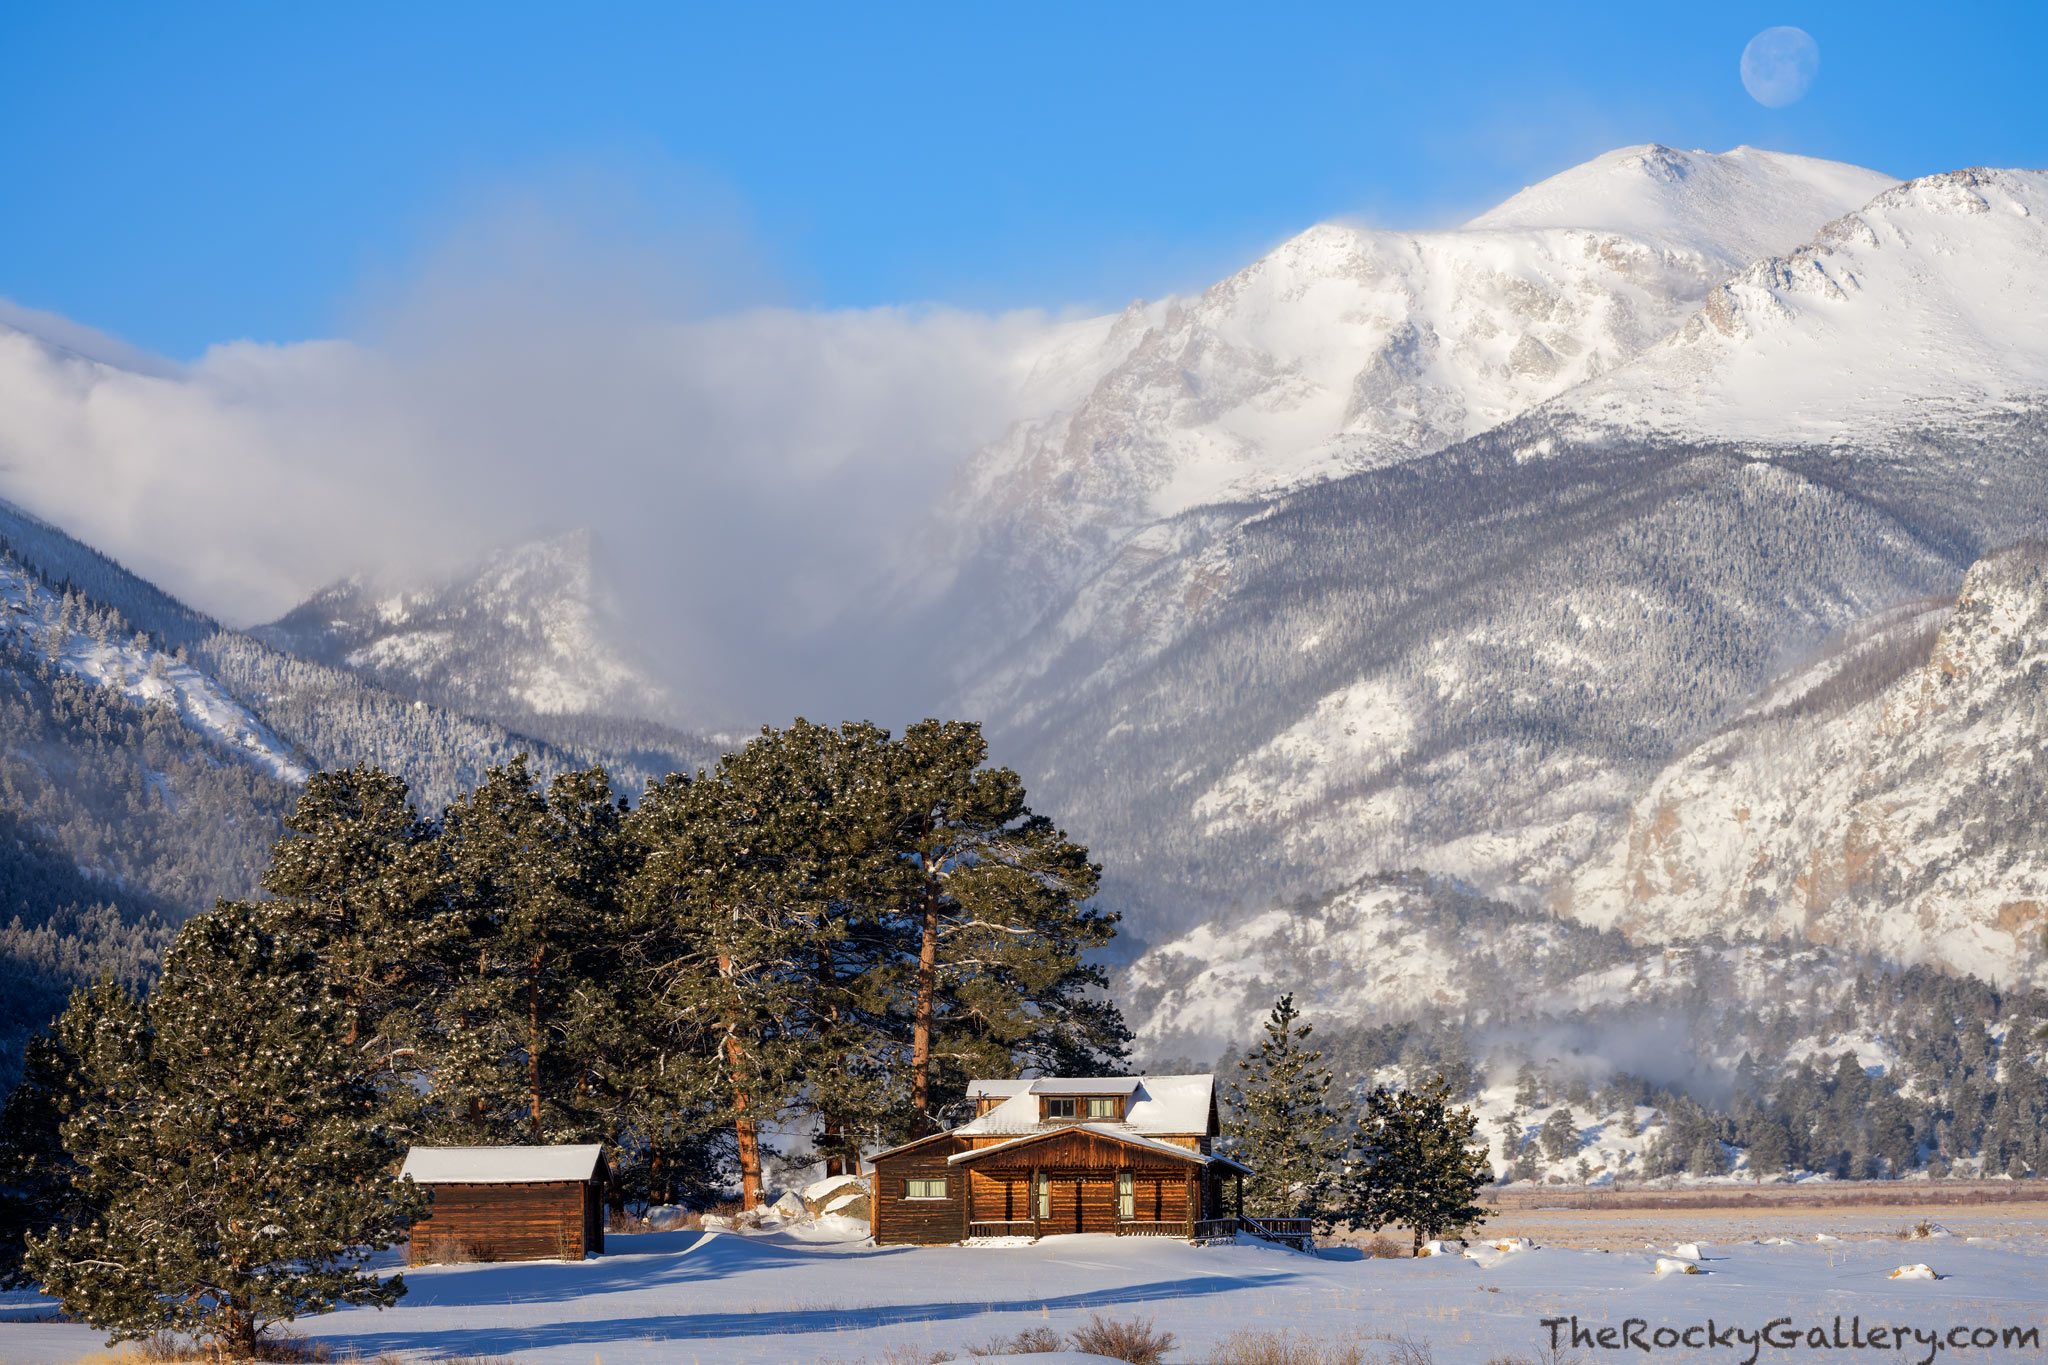 A few inches of fresh snow has fallen over Moraine Park on a cold February morning in Rocky Mountain National Park. My truck...